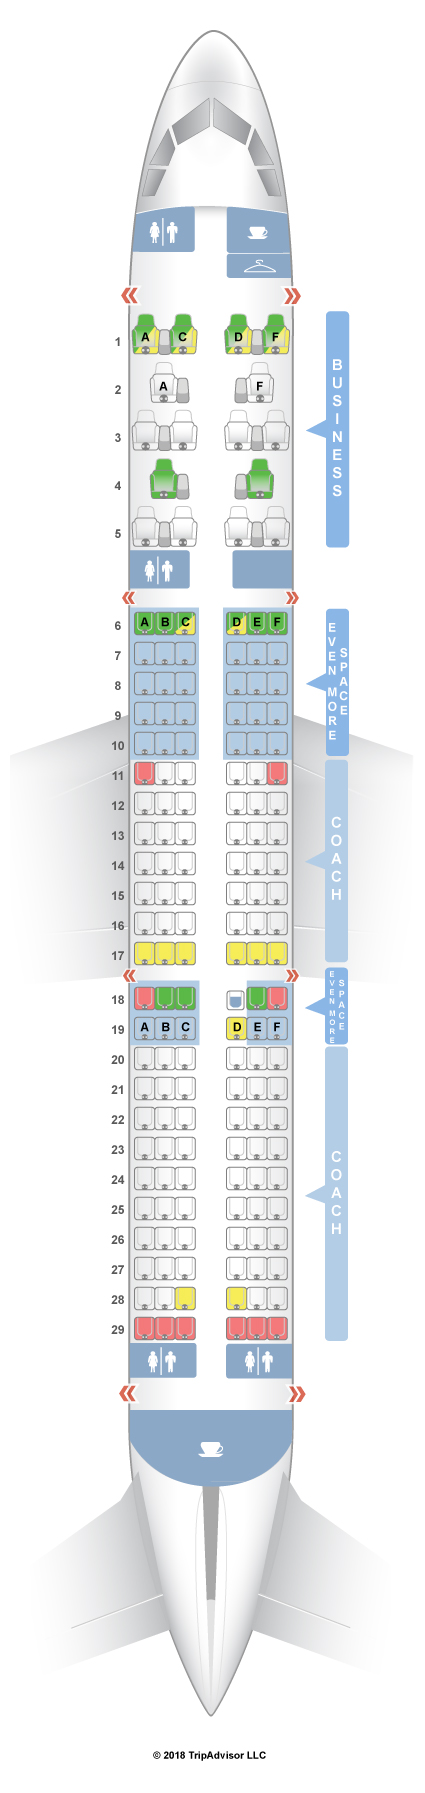 array map javascript with Jetblue Seat Map on 3764113525 additionally Visit National City together with Pacific Beach moreover Php Data Types additionally Cr2008328.